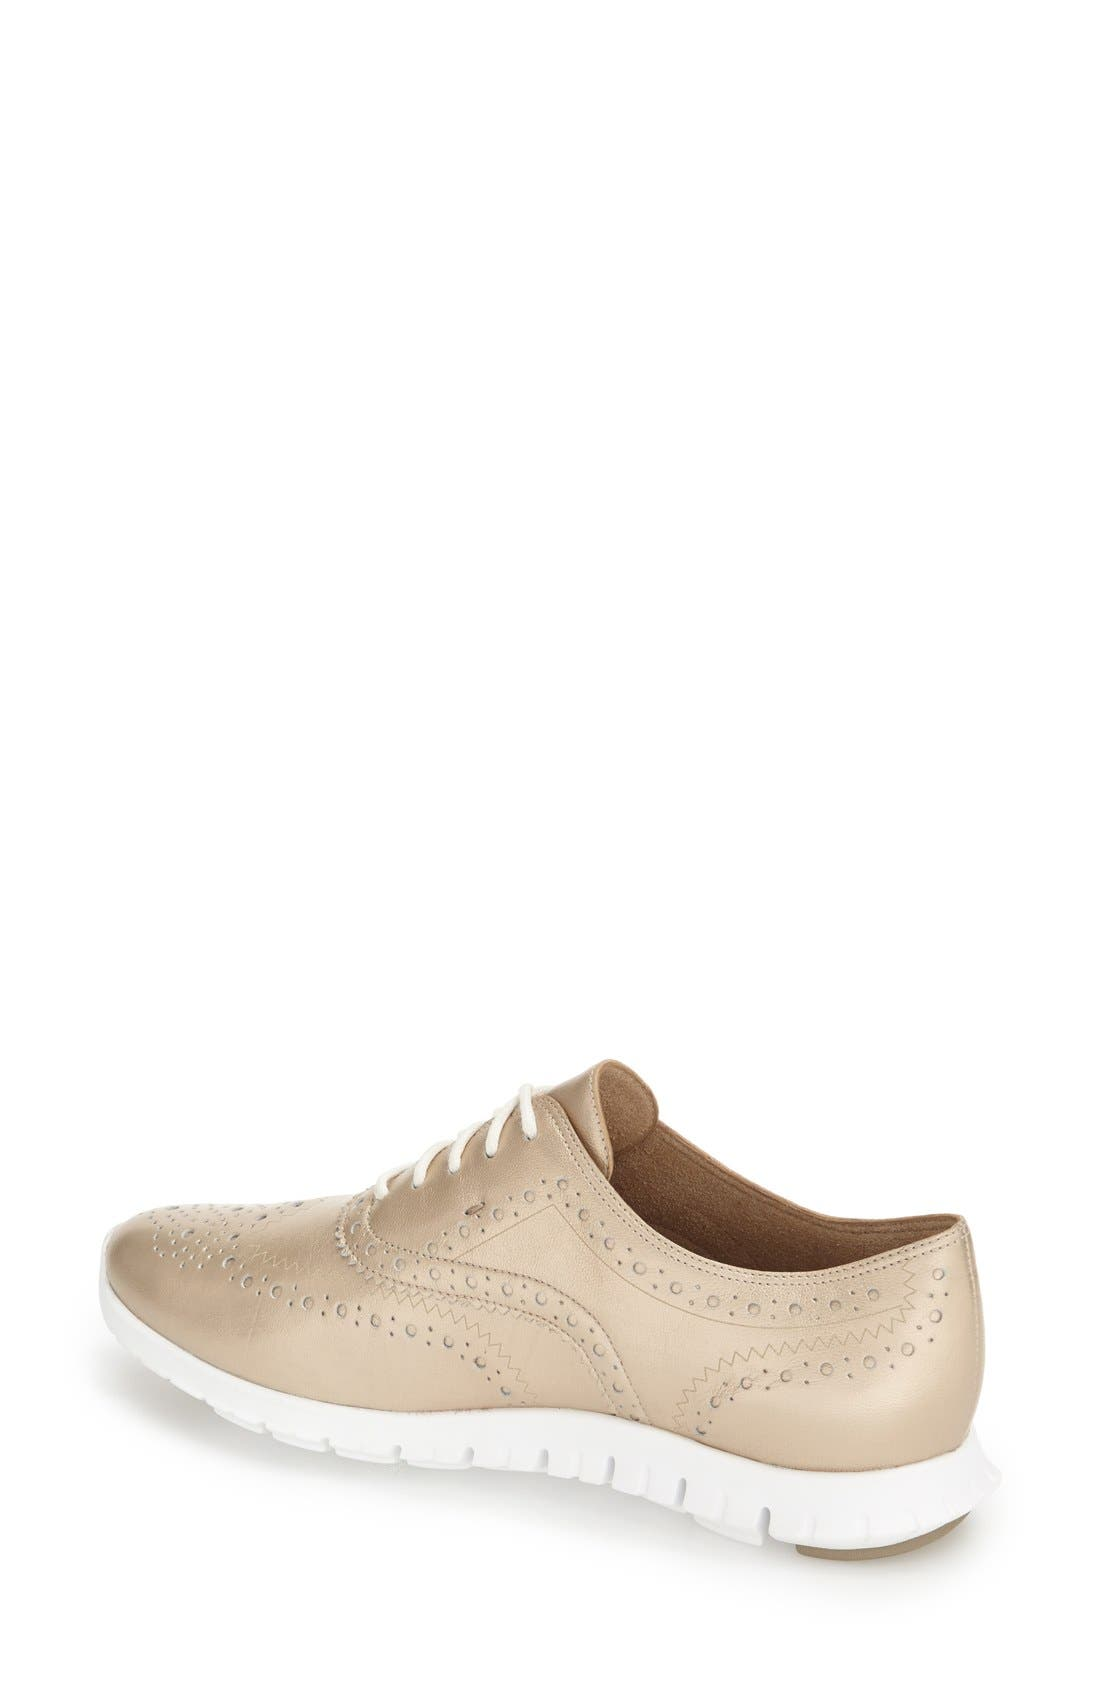 'ZeroGrand' Perforated Wingtip,                             Alternate thumbnail 60, color,